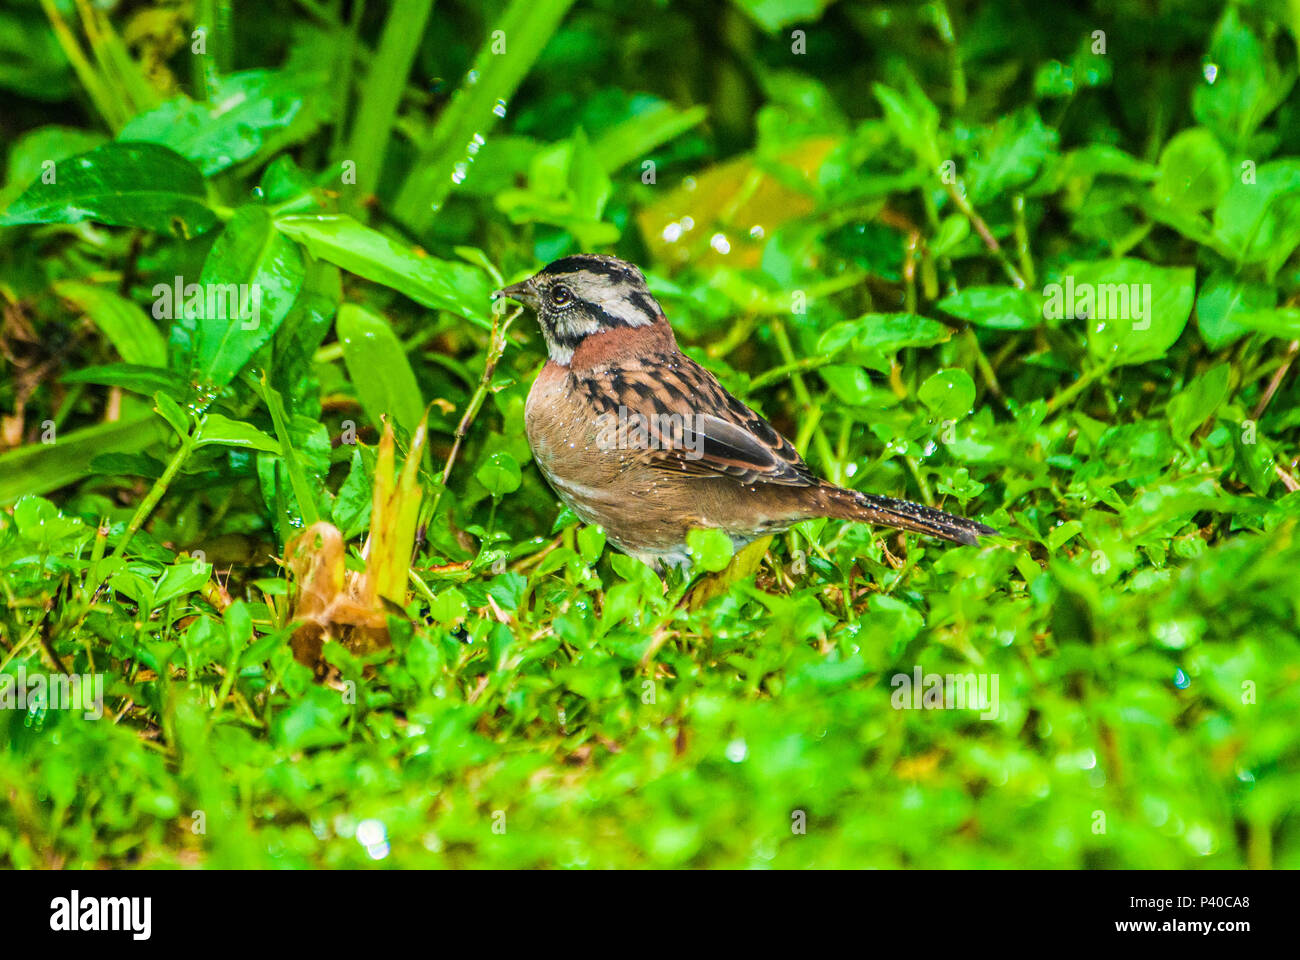 Rufous-collared Sparrow with spots of water on its feathers from the early morning dew in the Atlantic Rainforest Stock Photo